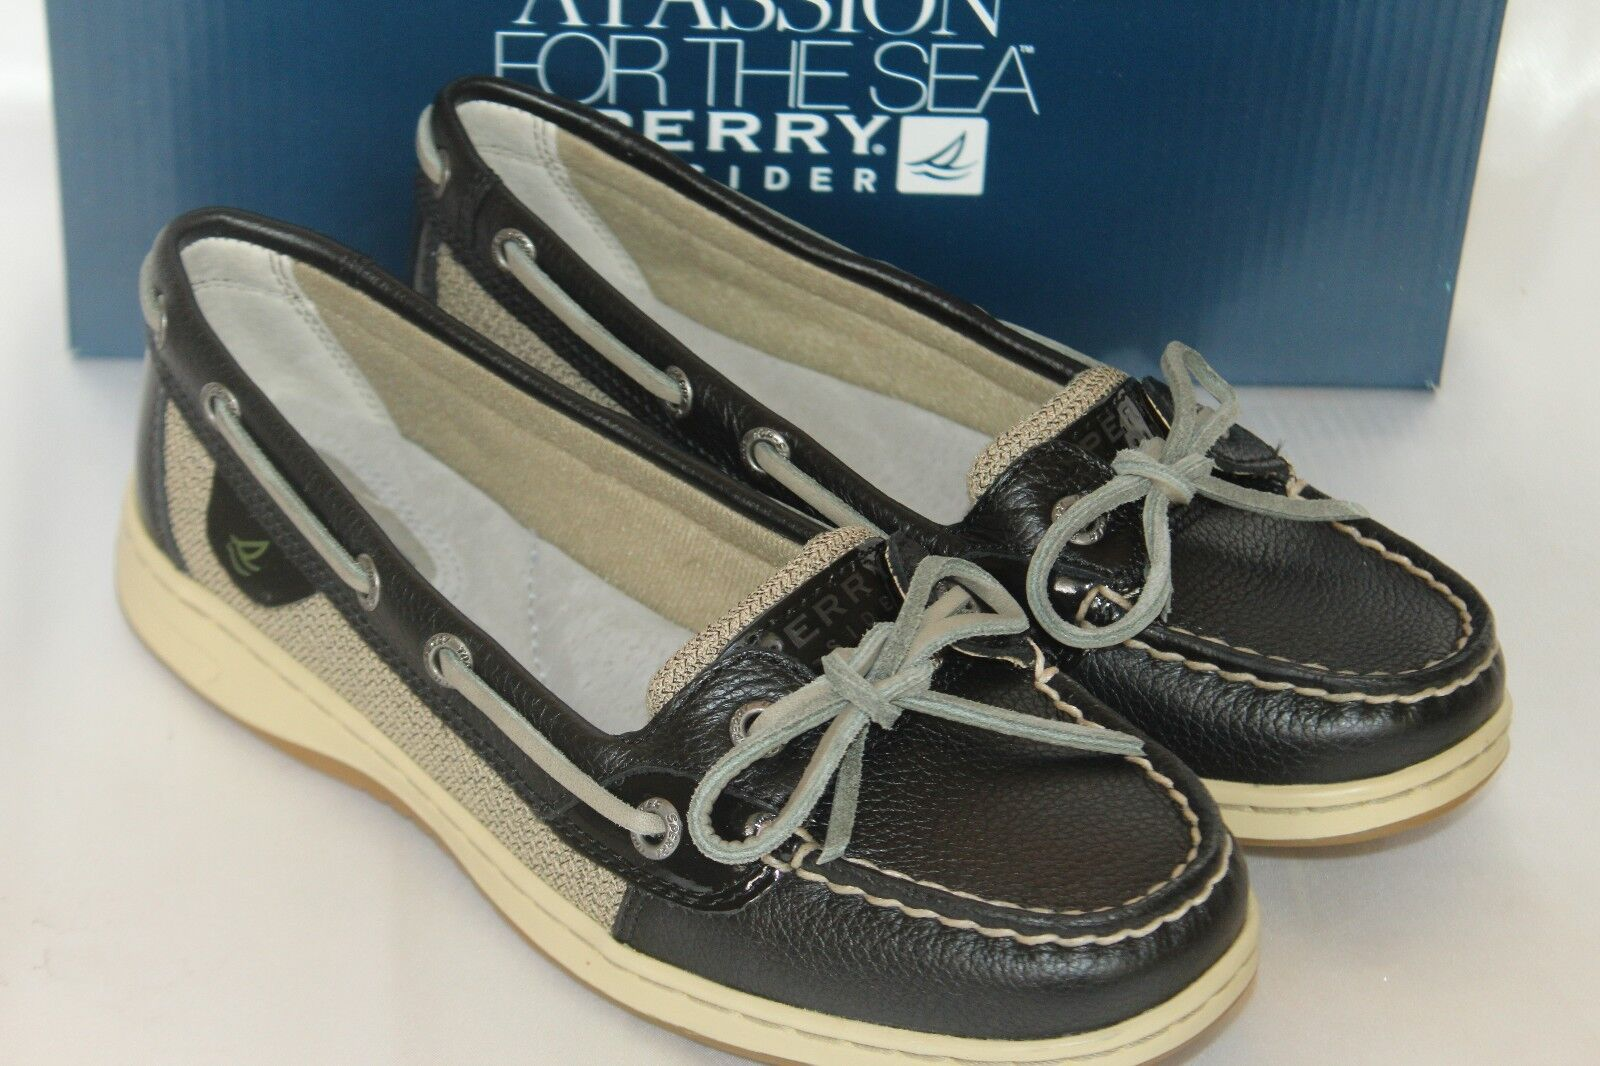 NEW  NIB  Sperry Sperry Sperry Top Sider ANGELFISH Black Leather Linen Boat shoes Sz 6 364a2b